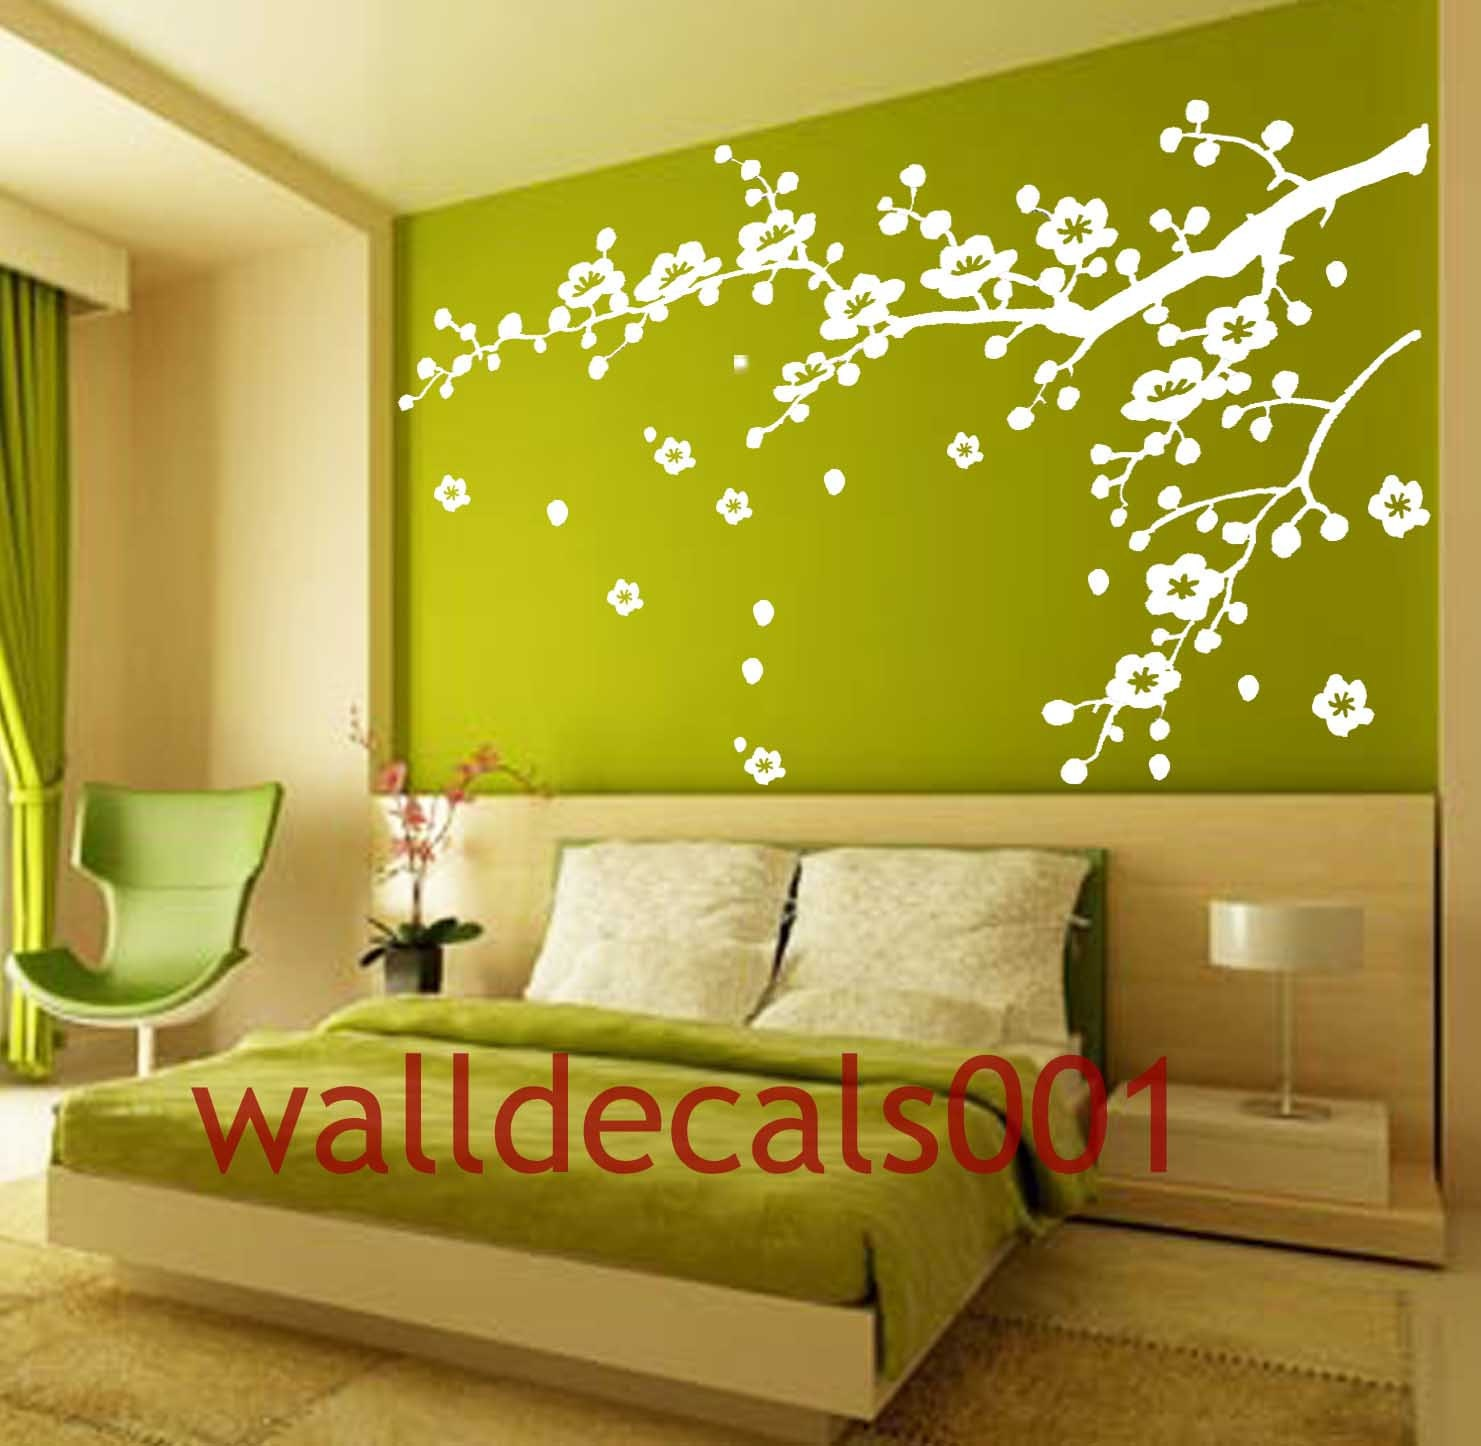 Benedetina wall decor decals vinyl wall decals wall stickers tree decal flower by walldecals001 amipublicfo Gallery